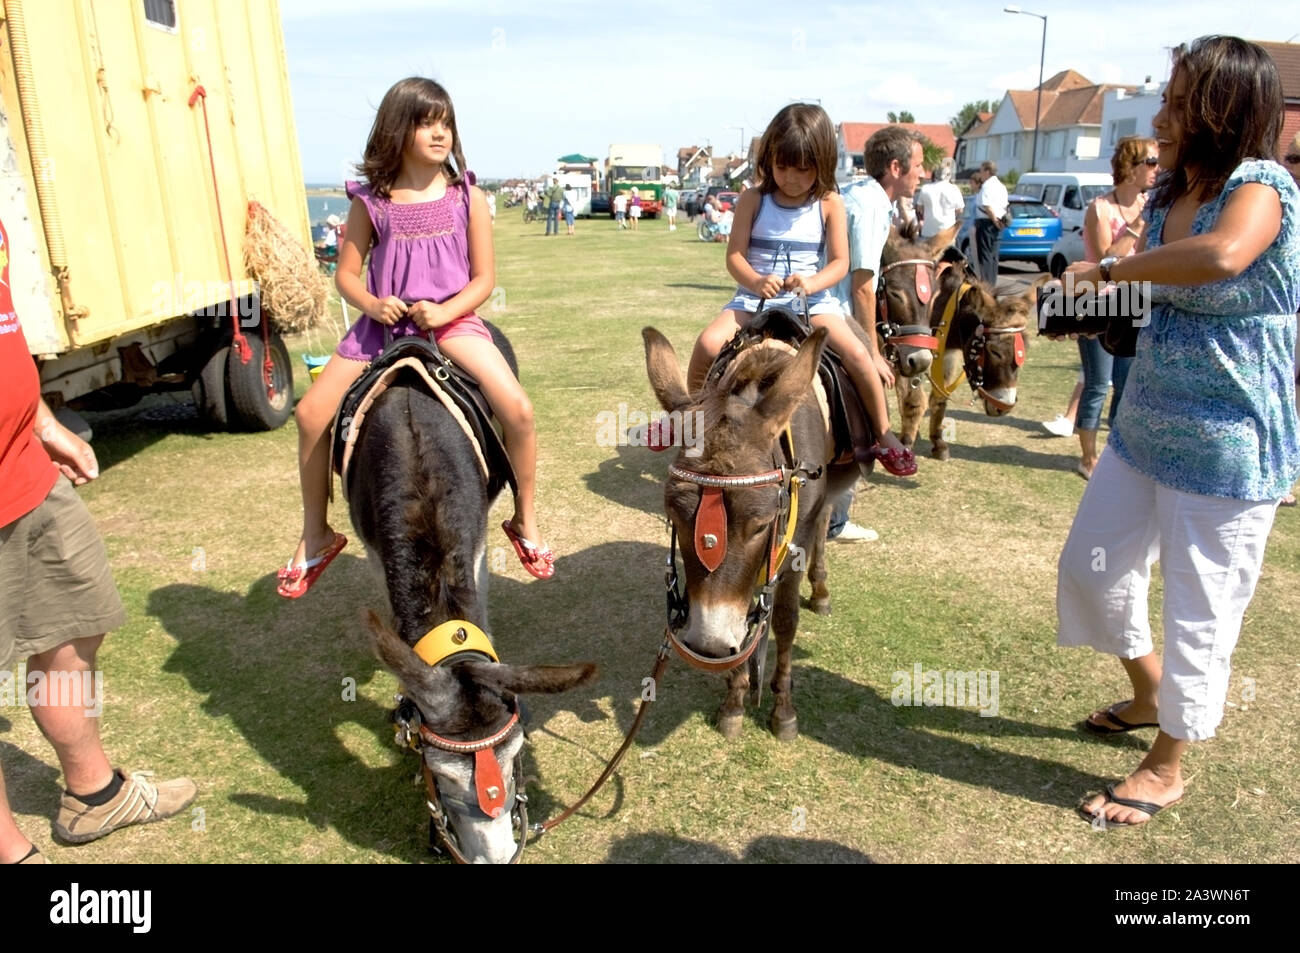 Two girls on Donkeys at a fair Stock Photo